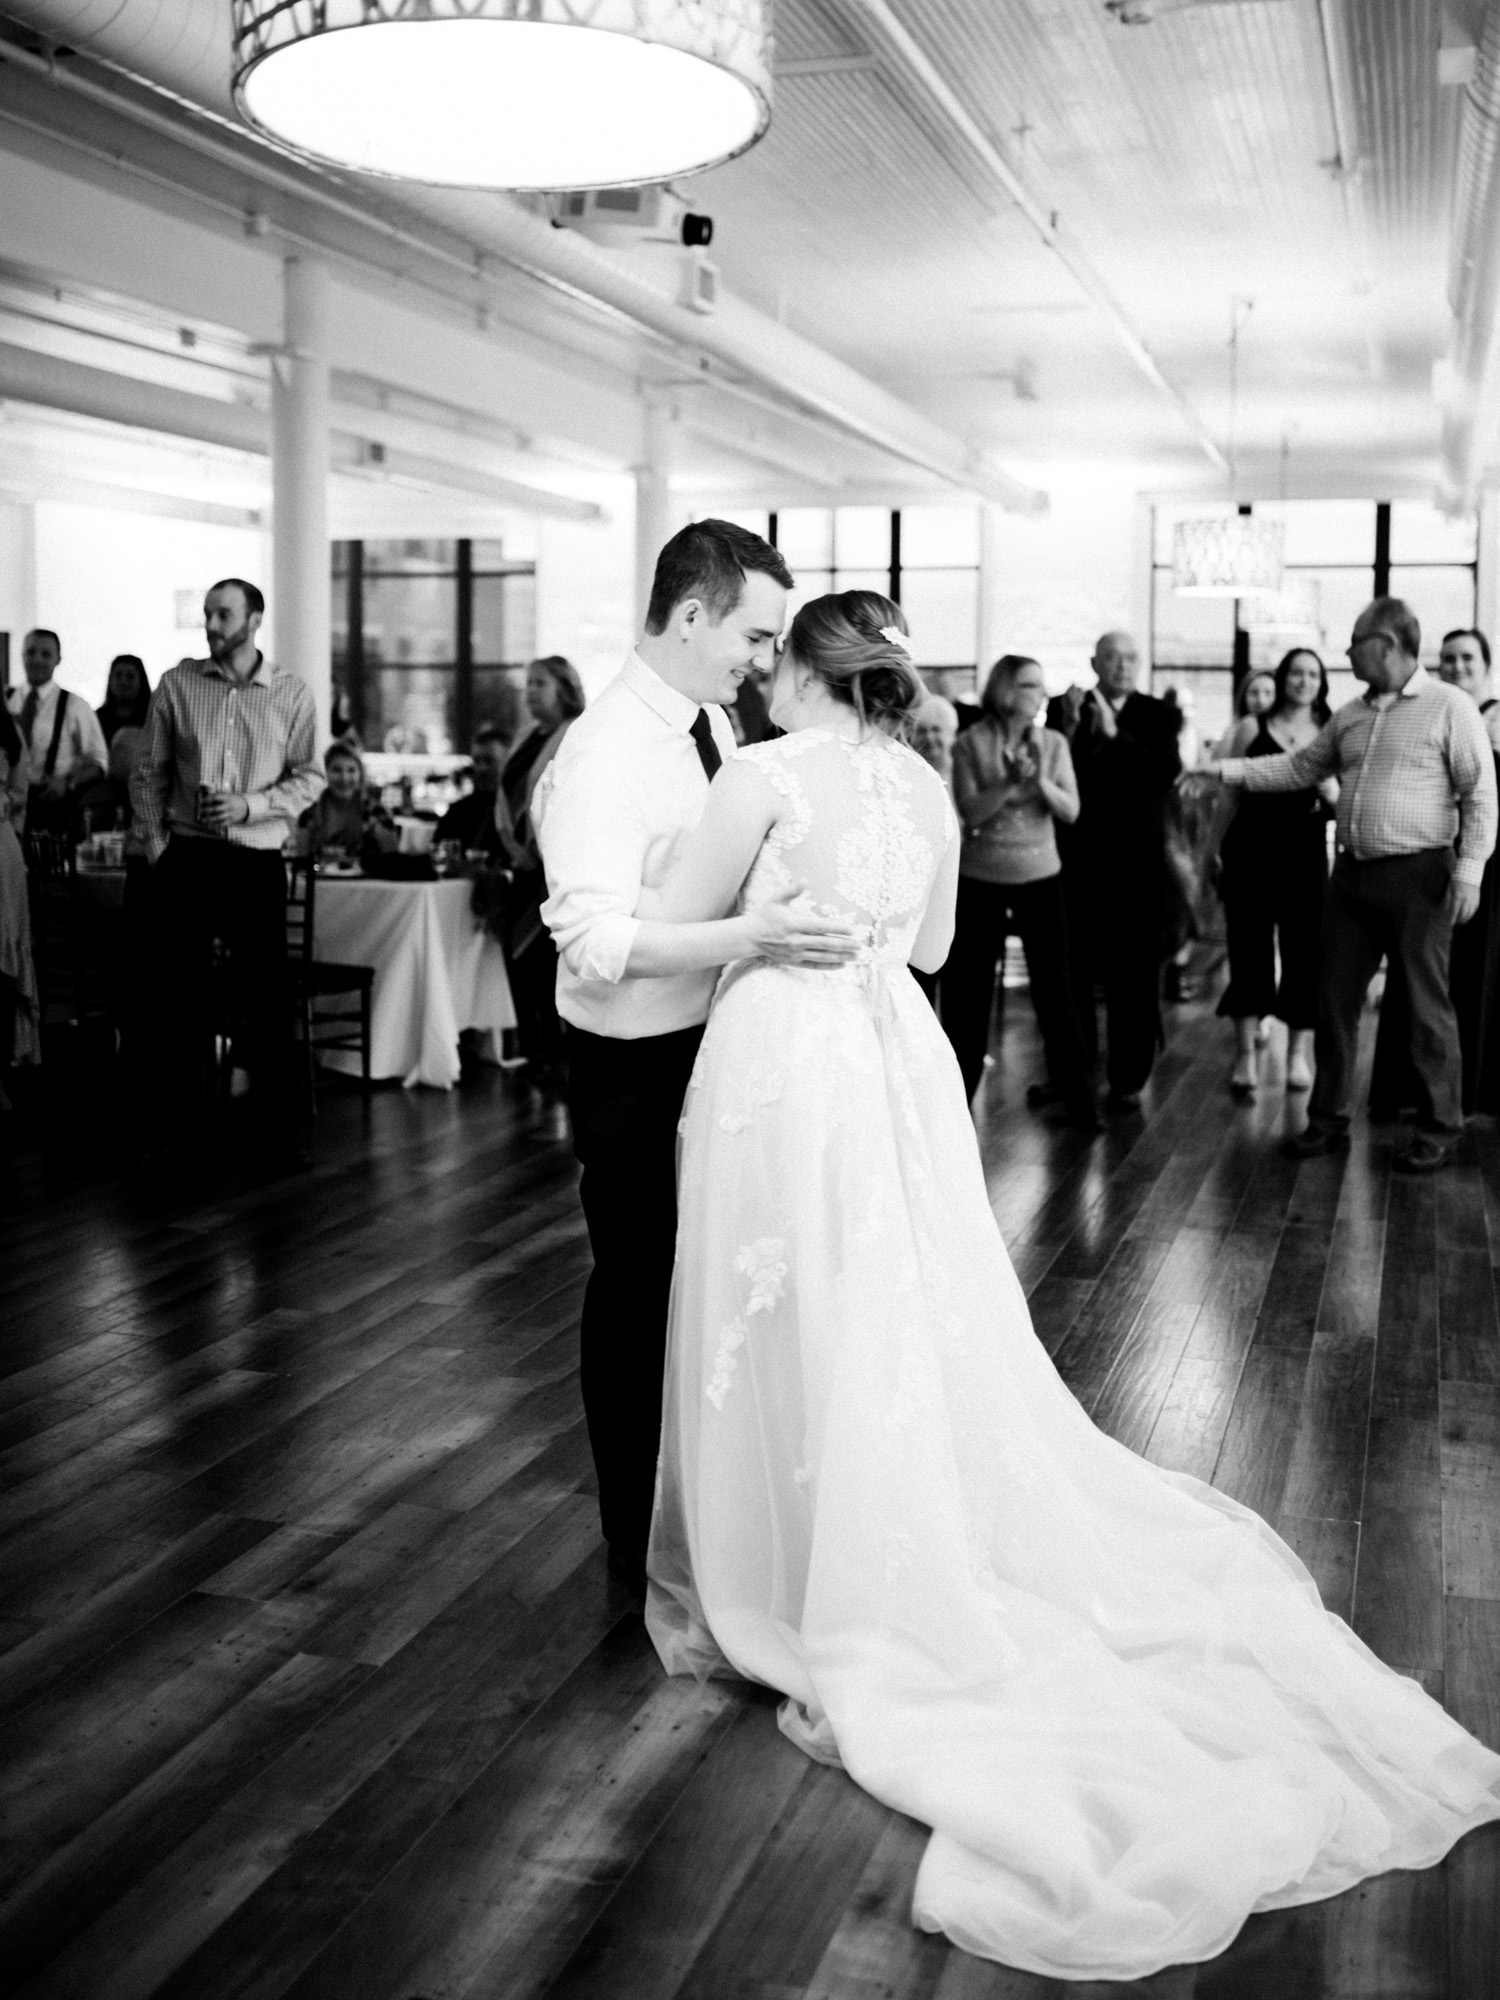 A couple shares their first dance at their wedding in downtown Kalamazoo